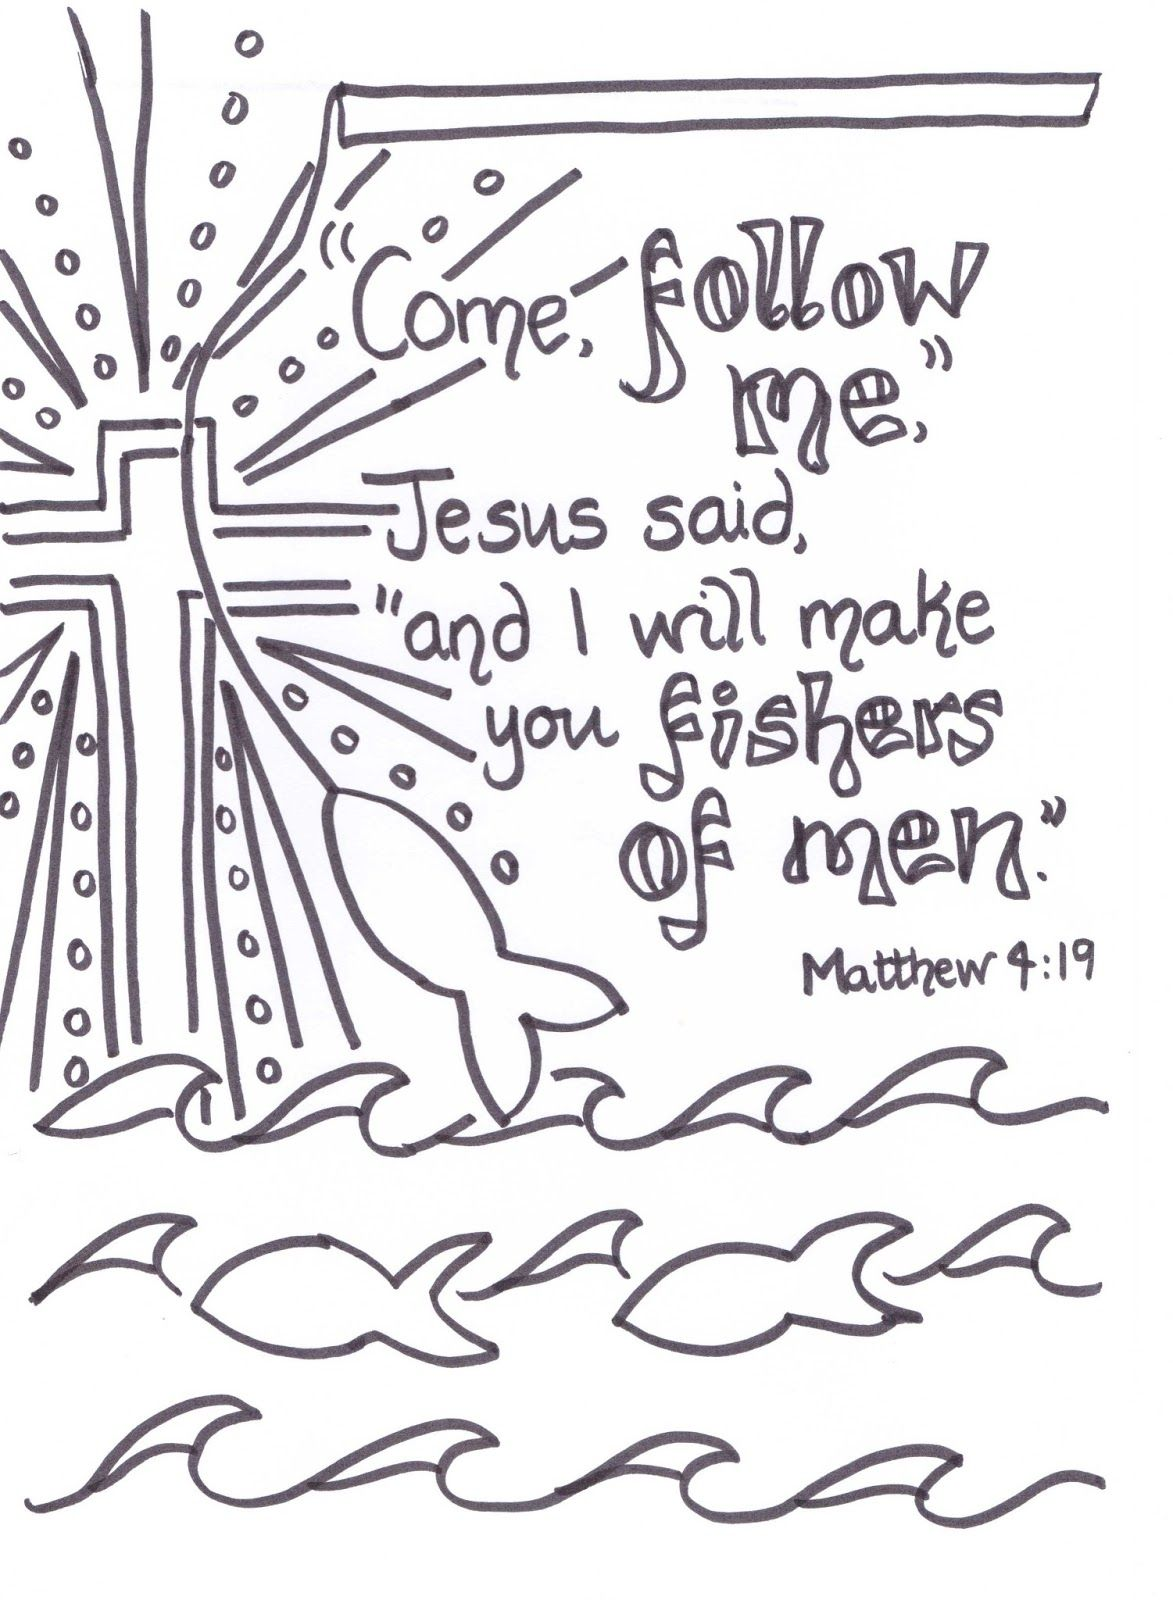 Creative Children S Ministry Fishers Of Men Verse To Colour In Bible Verse Coloring Scripture Doodle Fishers Of Men Verse